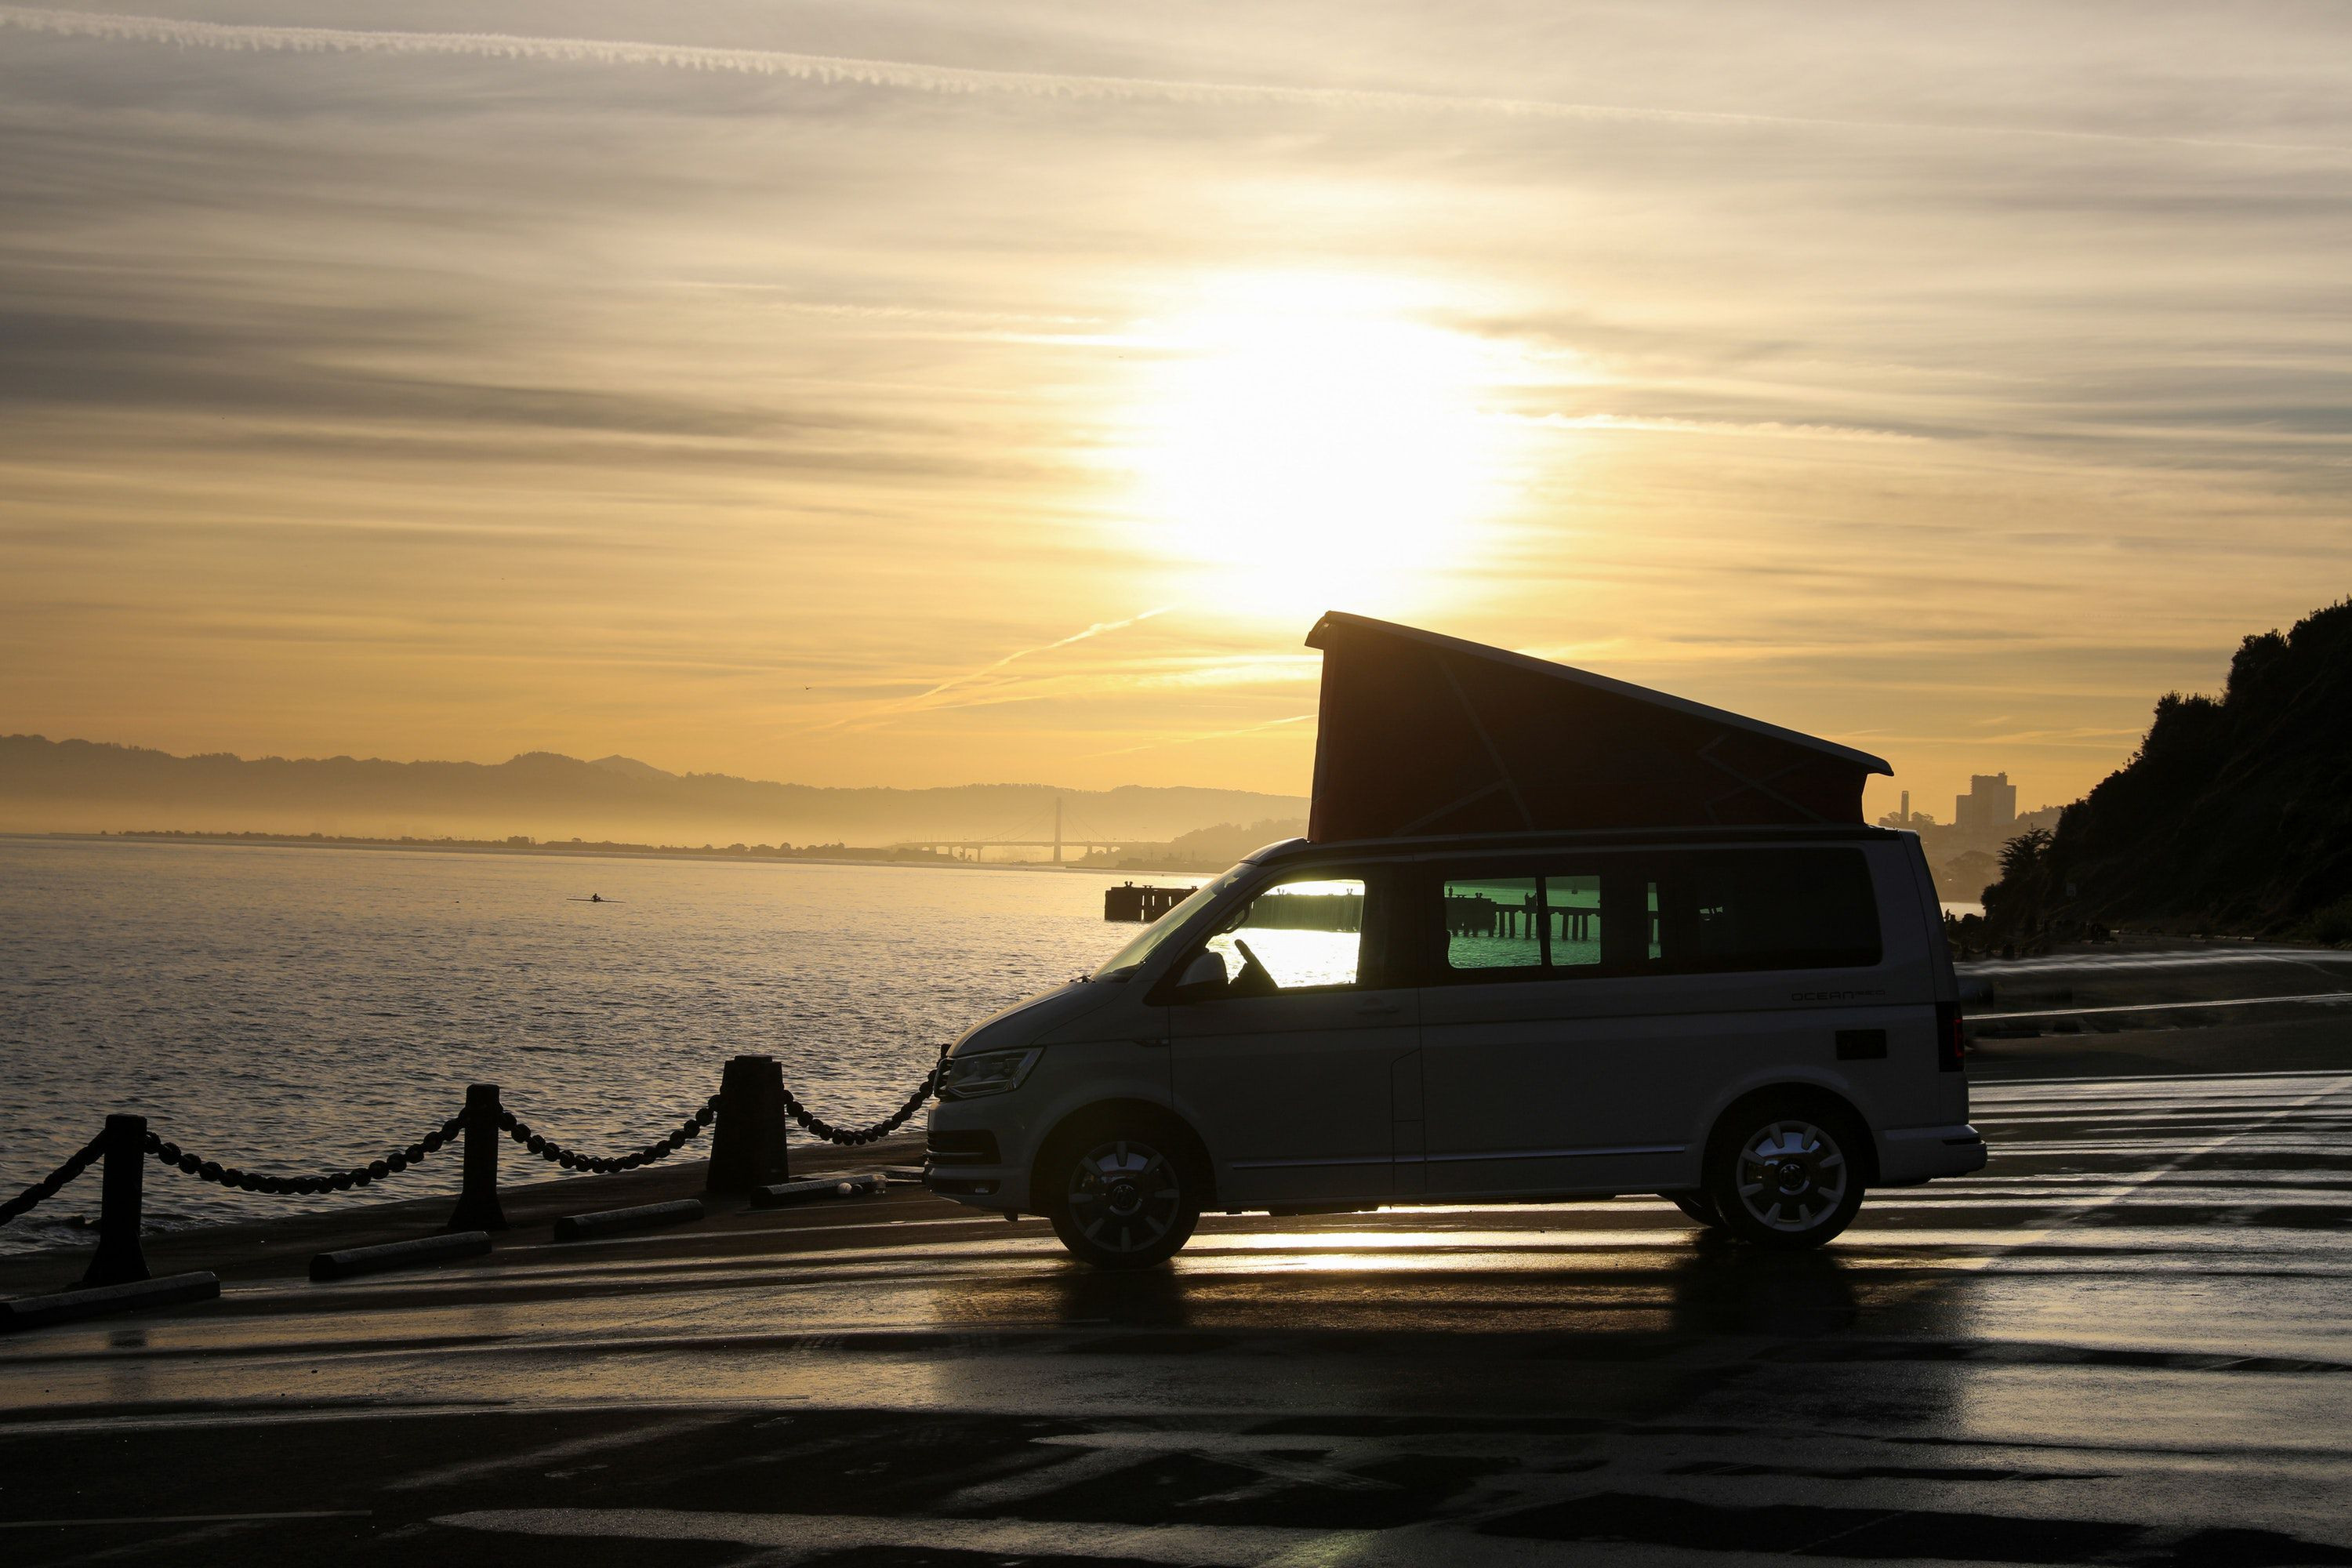 VW California campervan with roof up in sunset